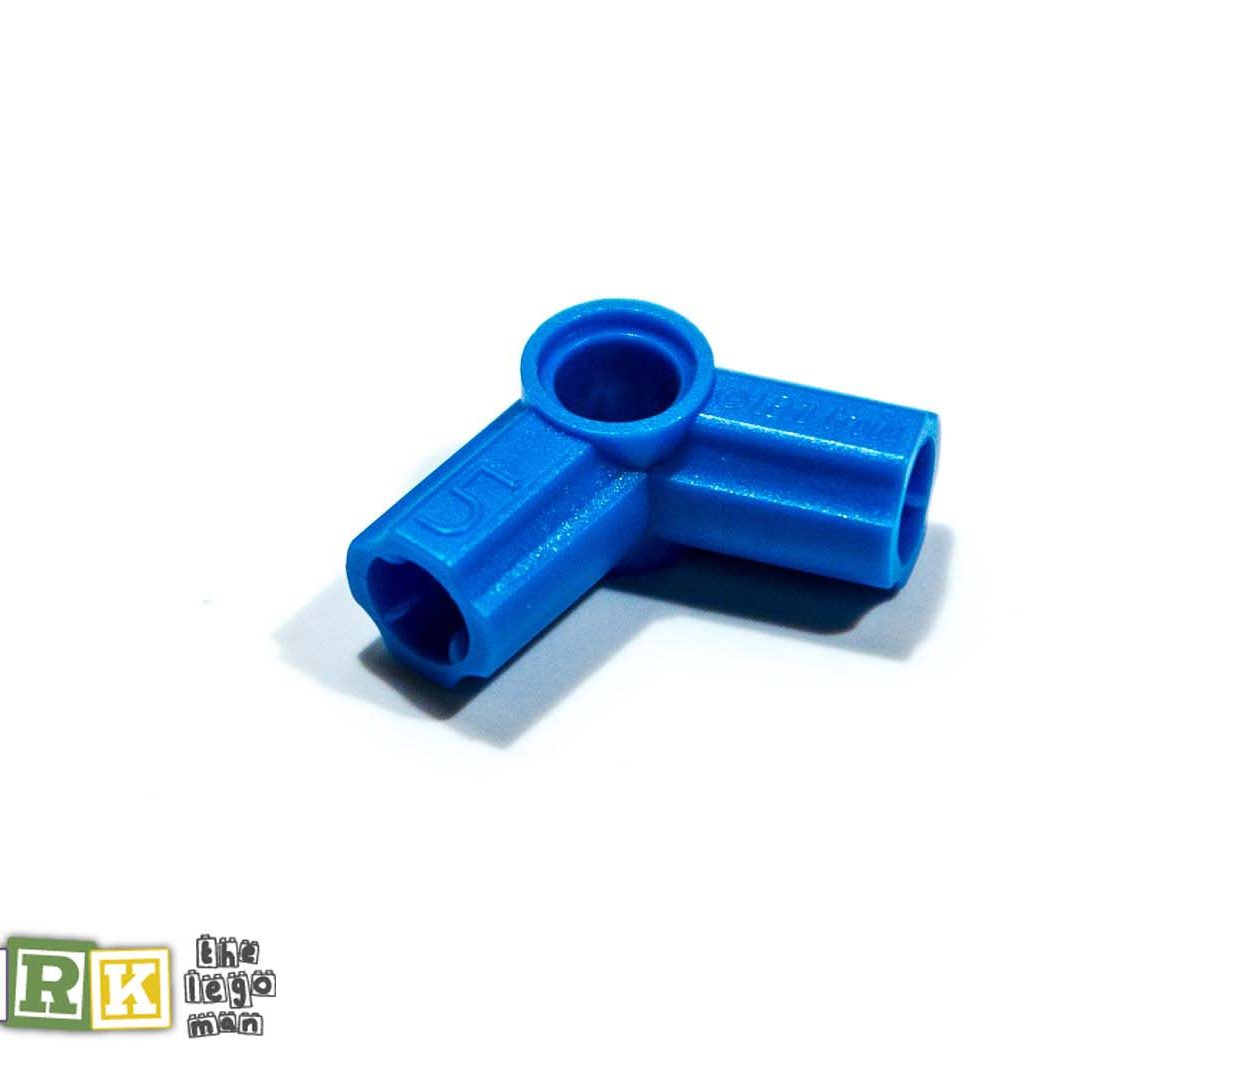 Lego 4185582 32015 1x Blue #5 112.5 Degree Angle Element